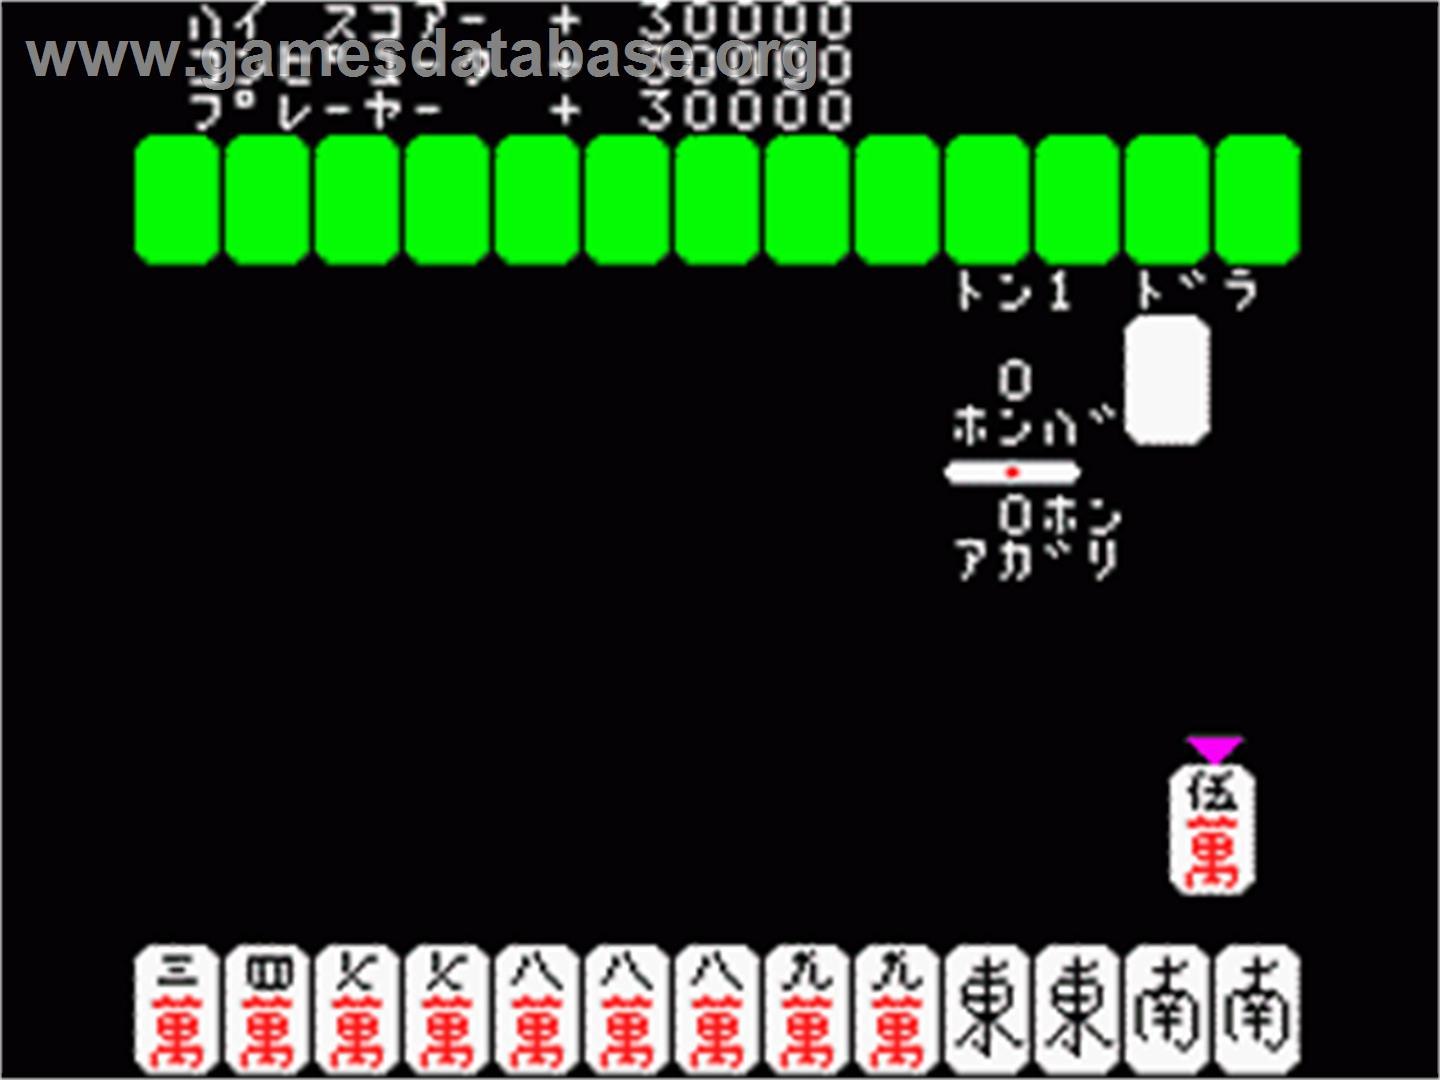 Excite Mahjong - Casio PV-1000 - Artwork - In Game